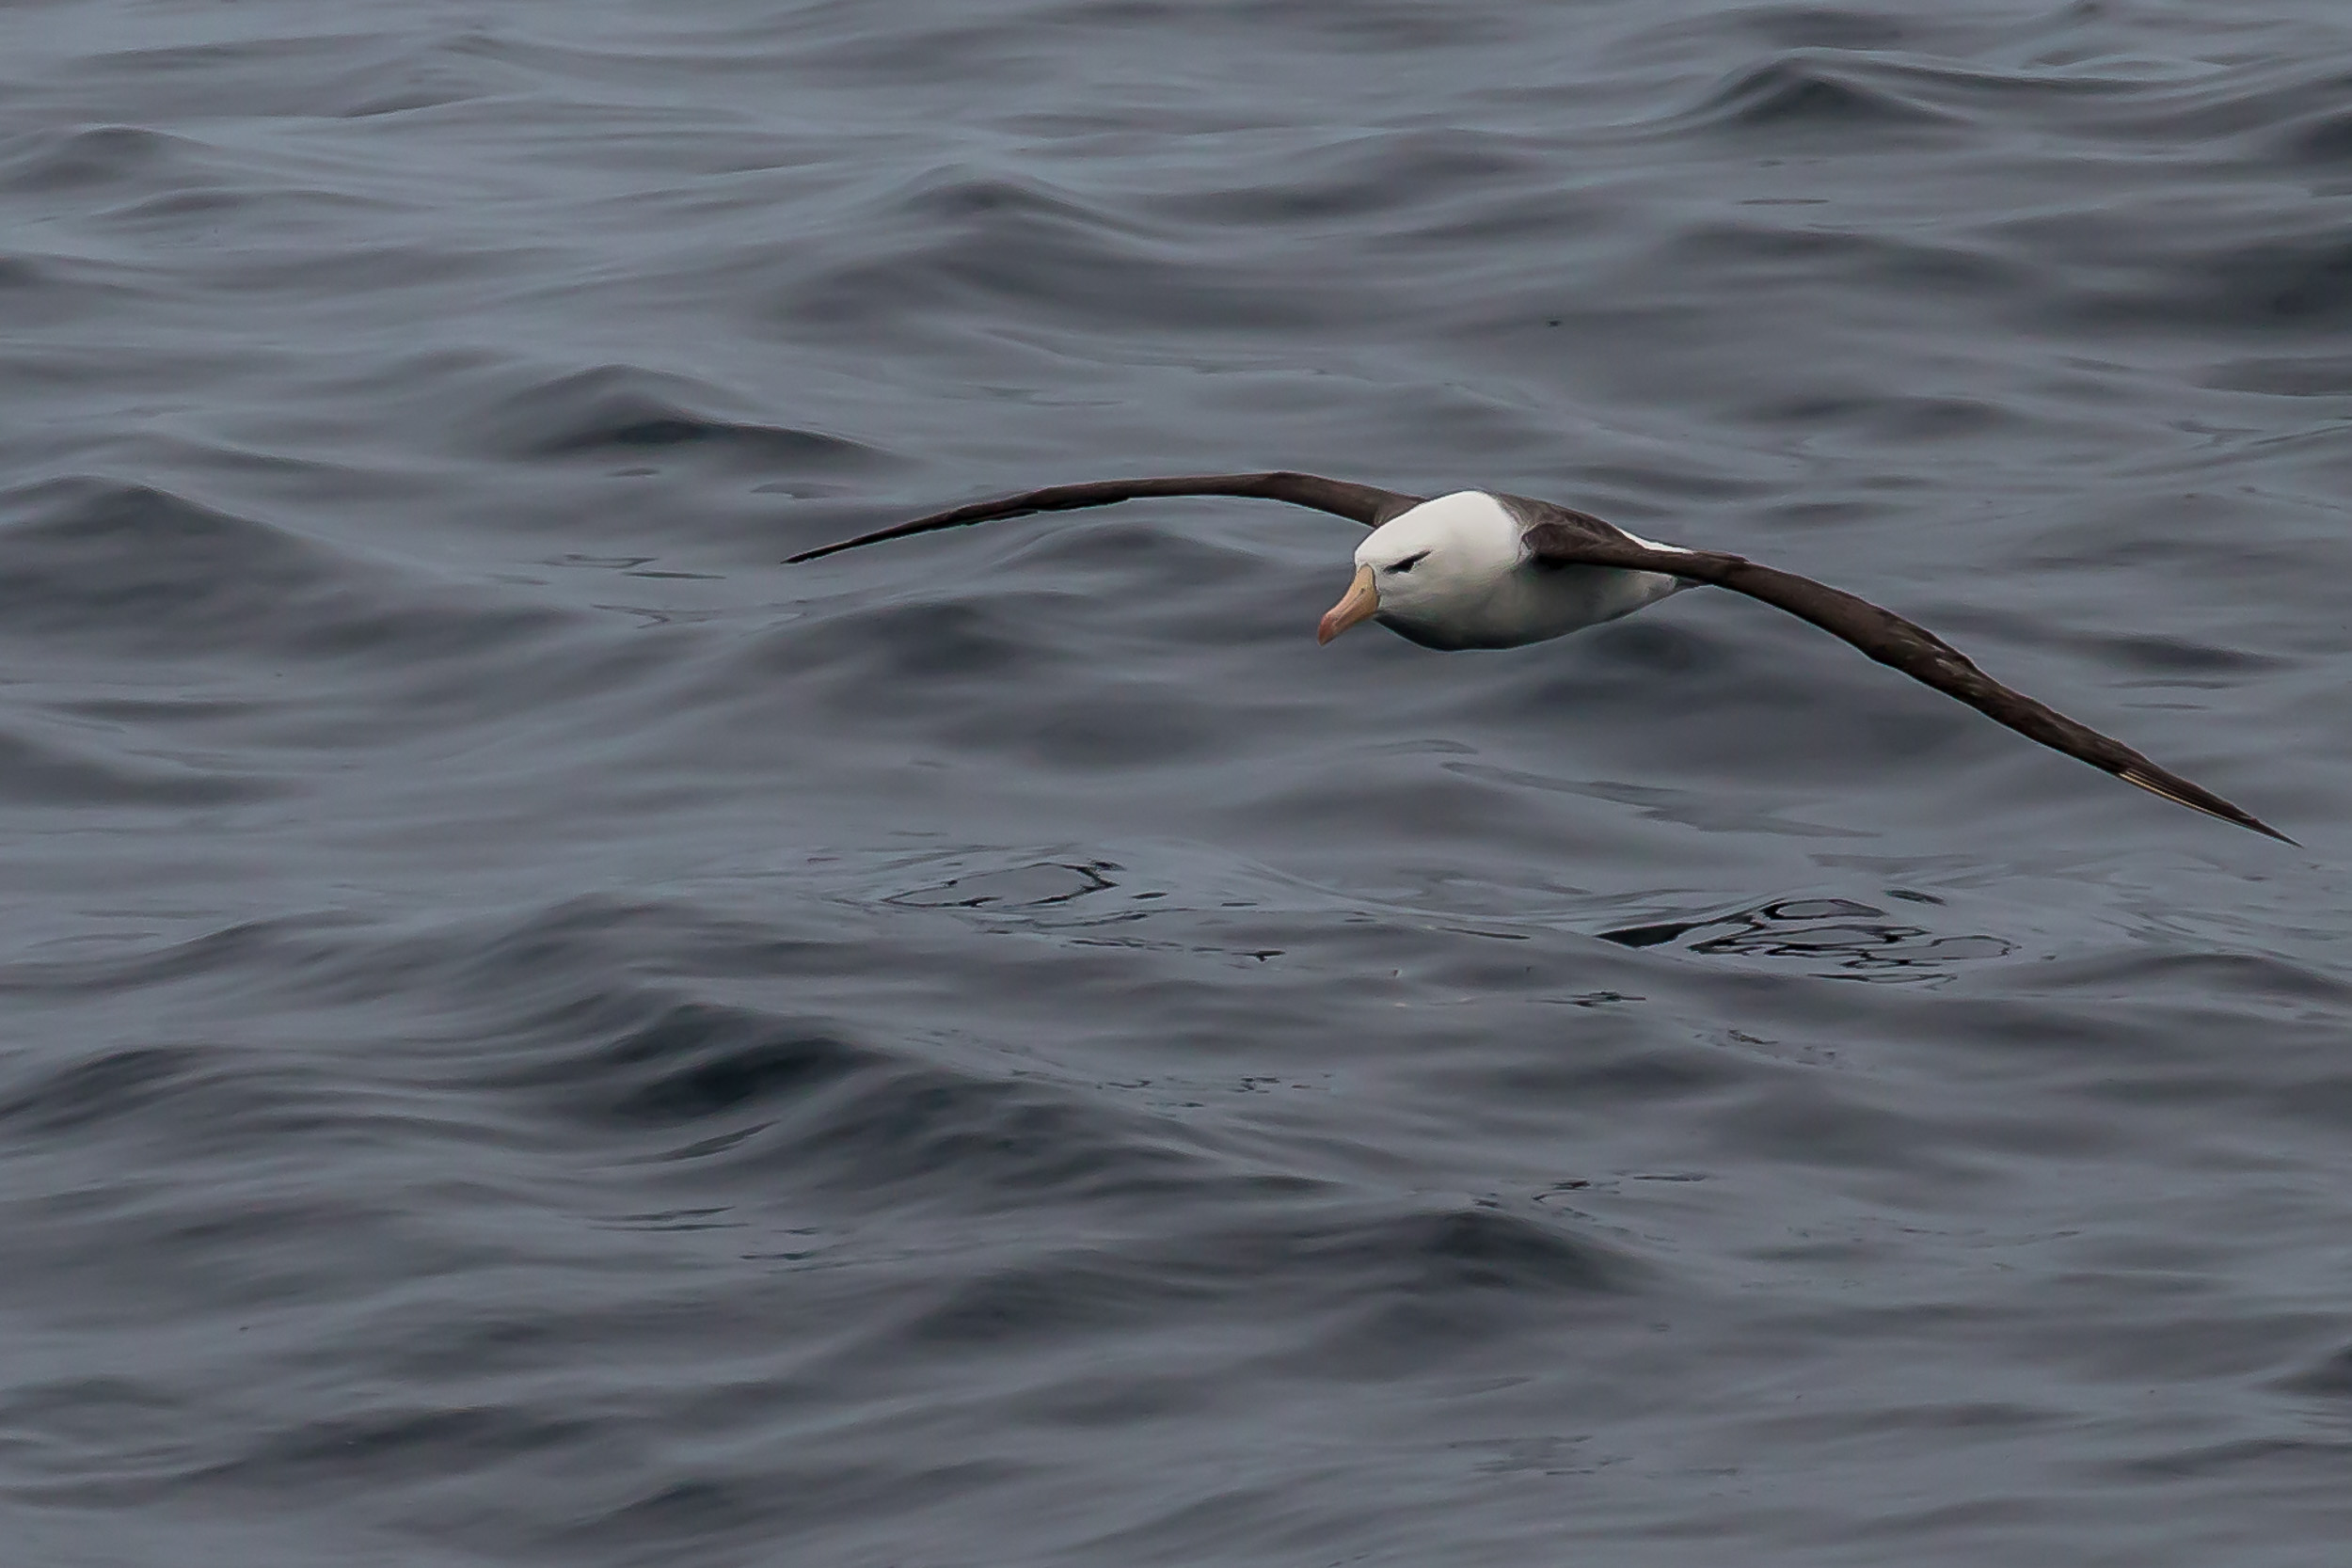 An ever graceful albatross skims the surface